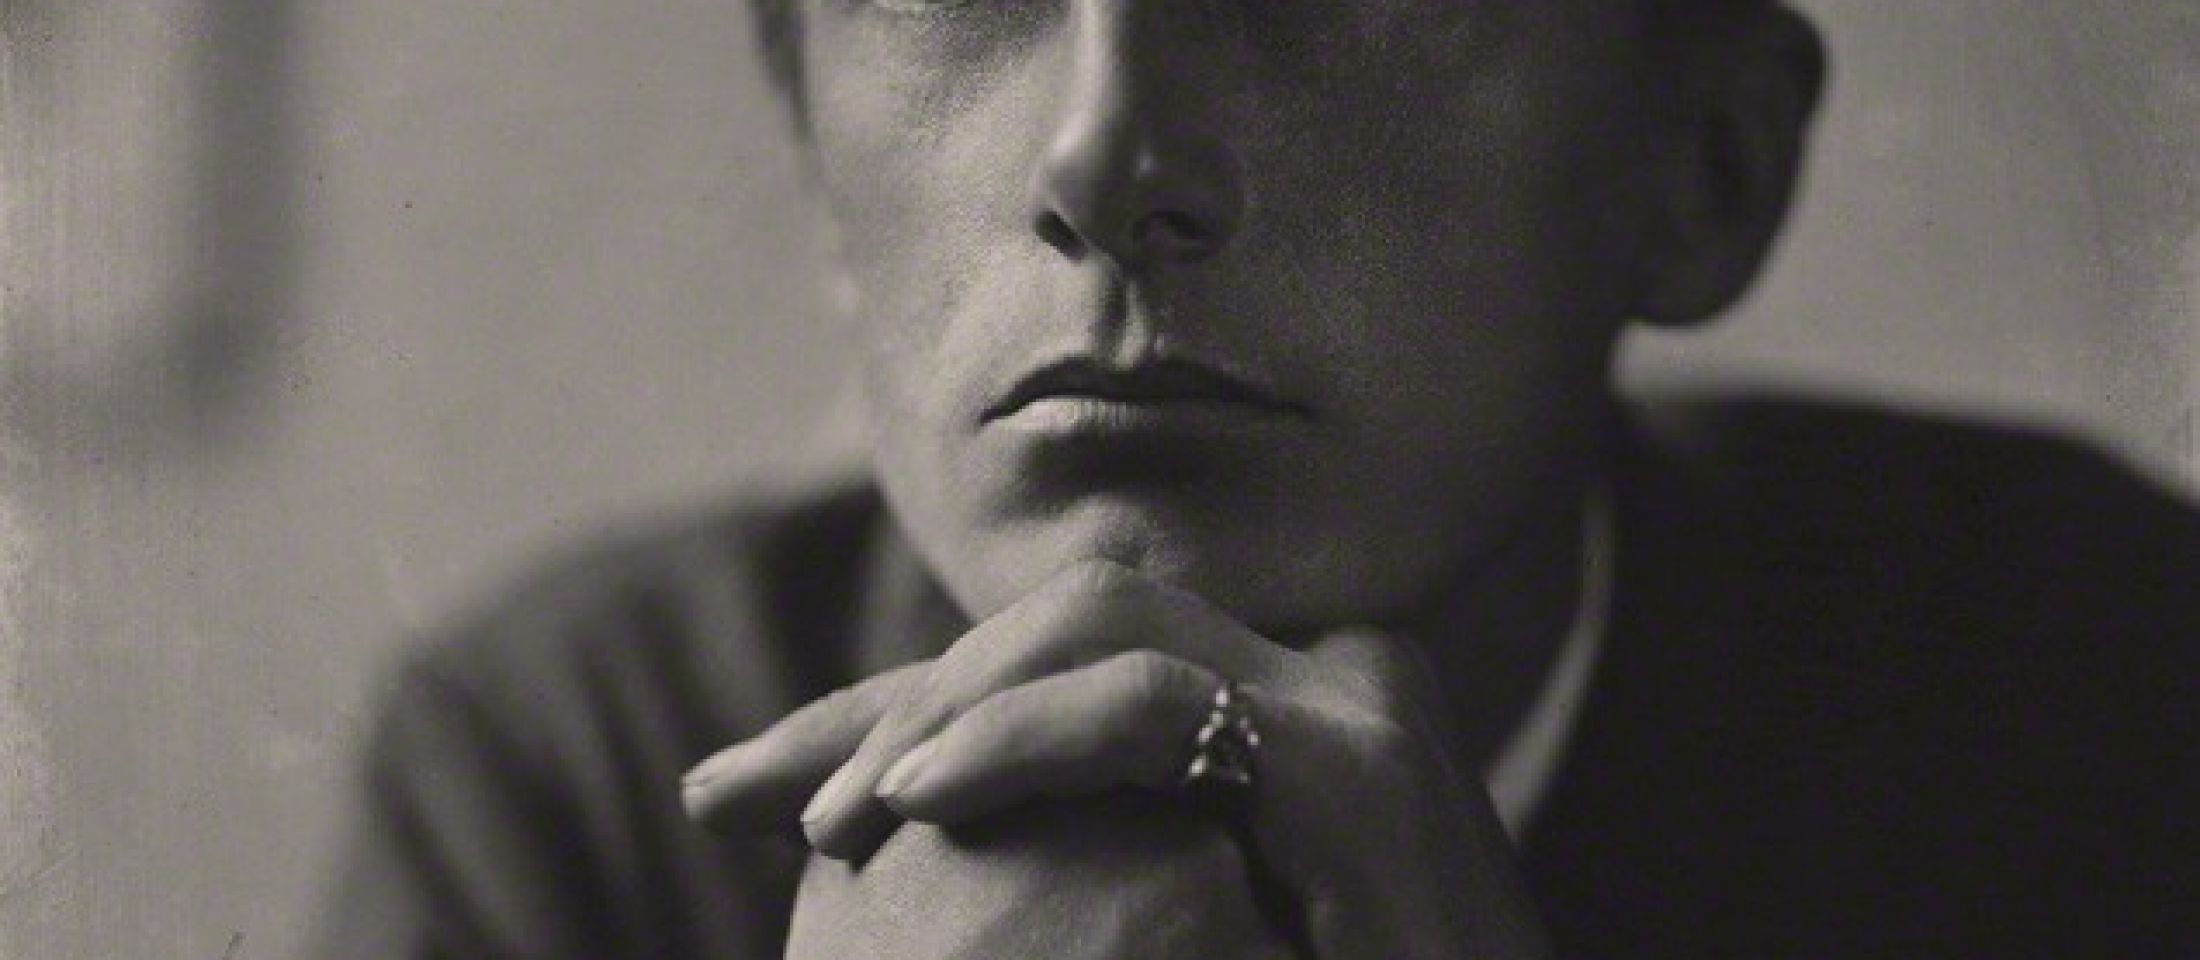 Edward Thomas. Author of The Ash Grove